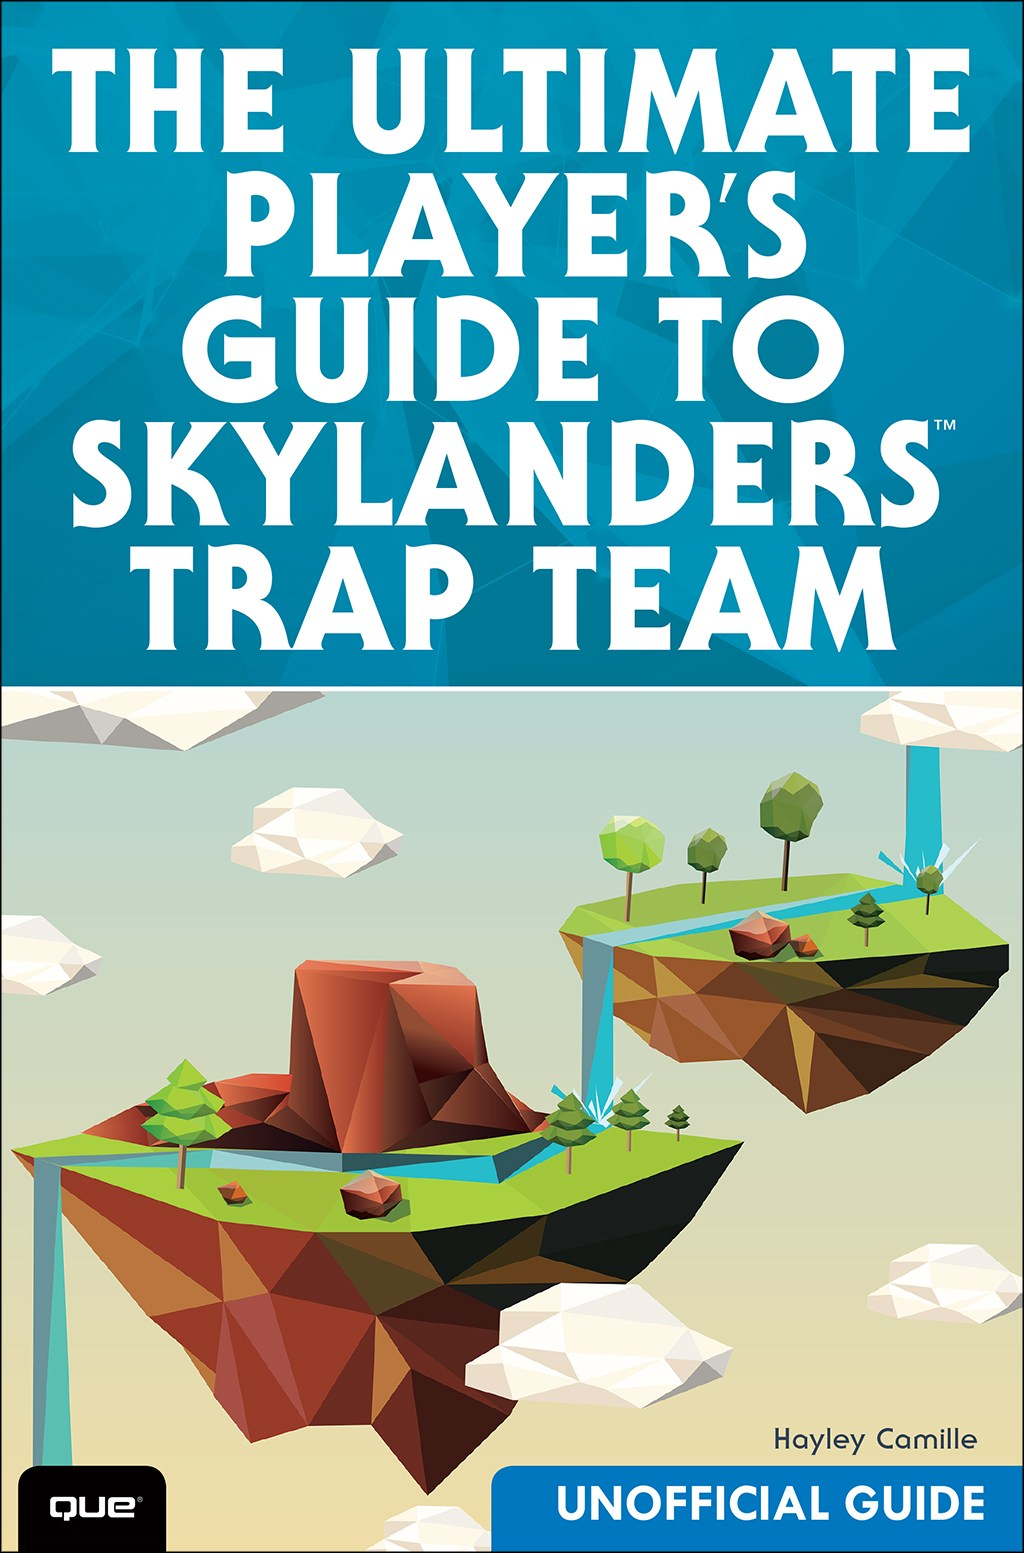 Ultimate Player's Guide to Skylanders Trap Team (Unofficial Guide), The 9780134216171